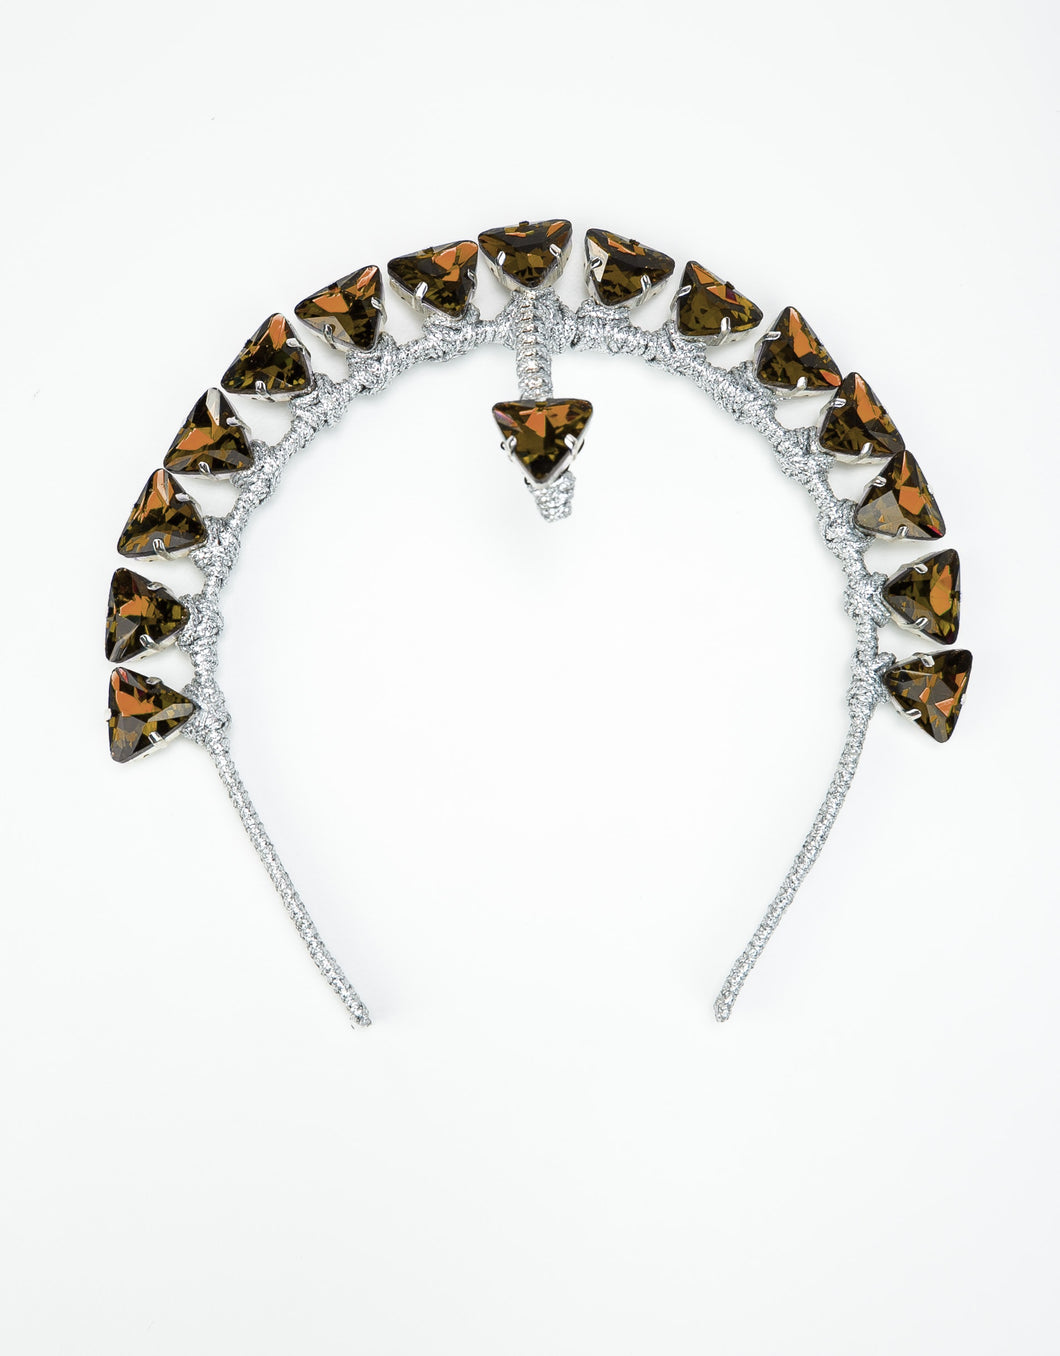 Handmade silver headband with topaz triangle crystals